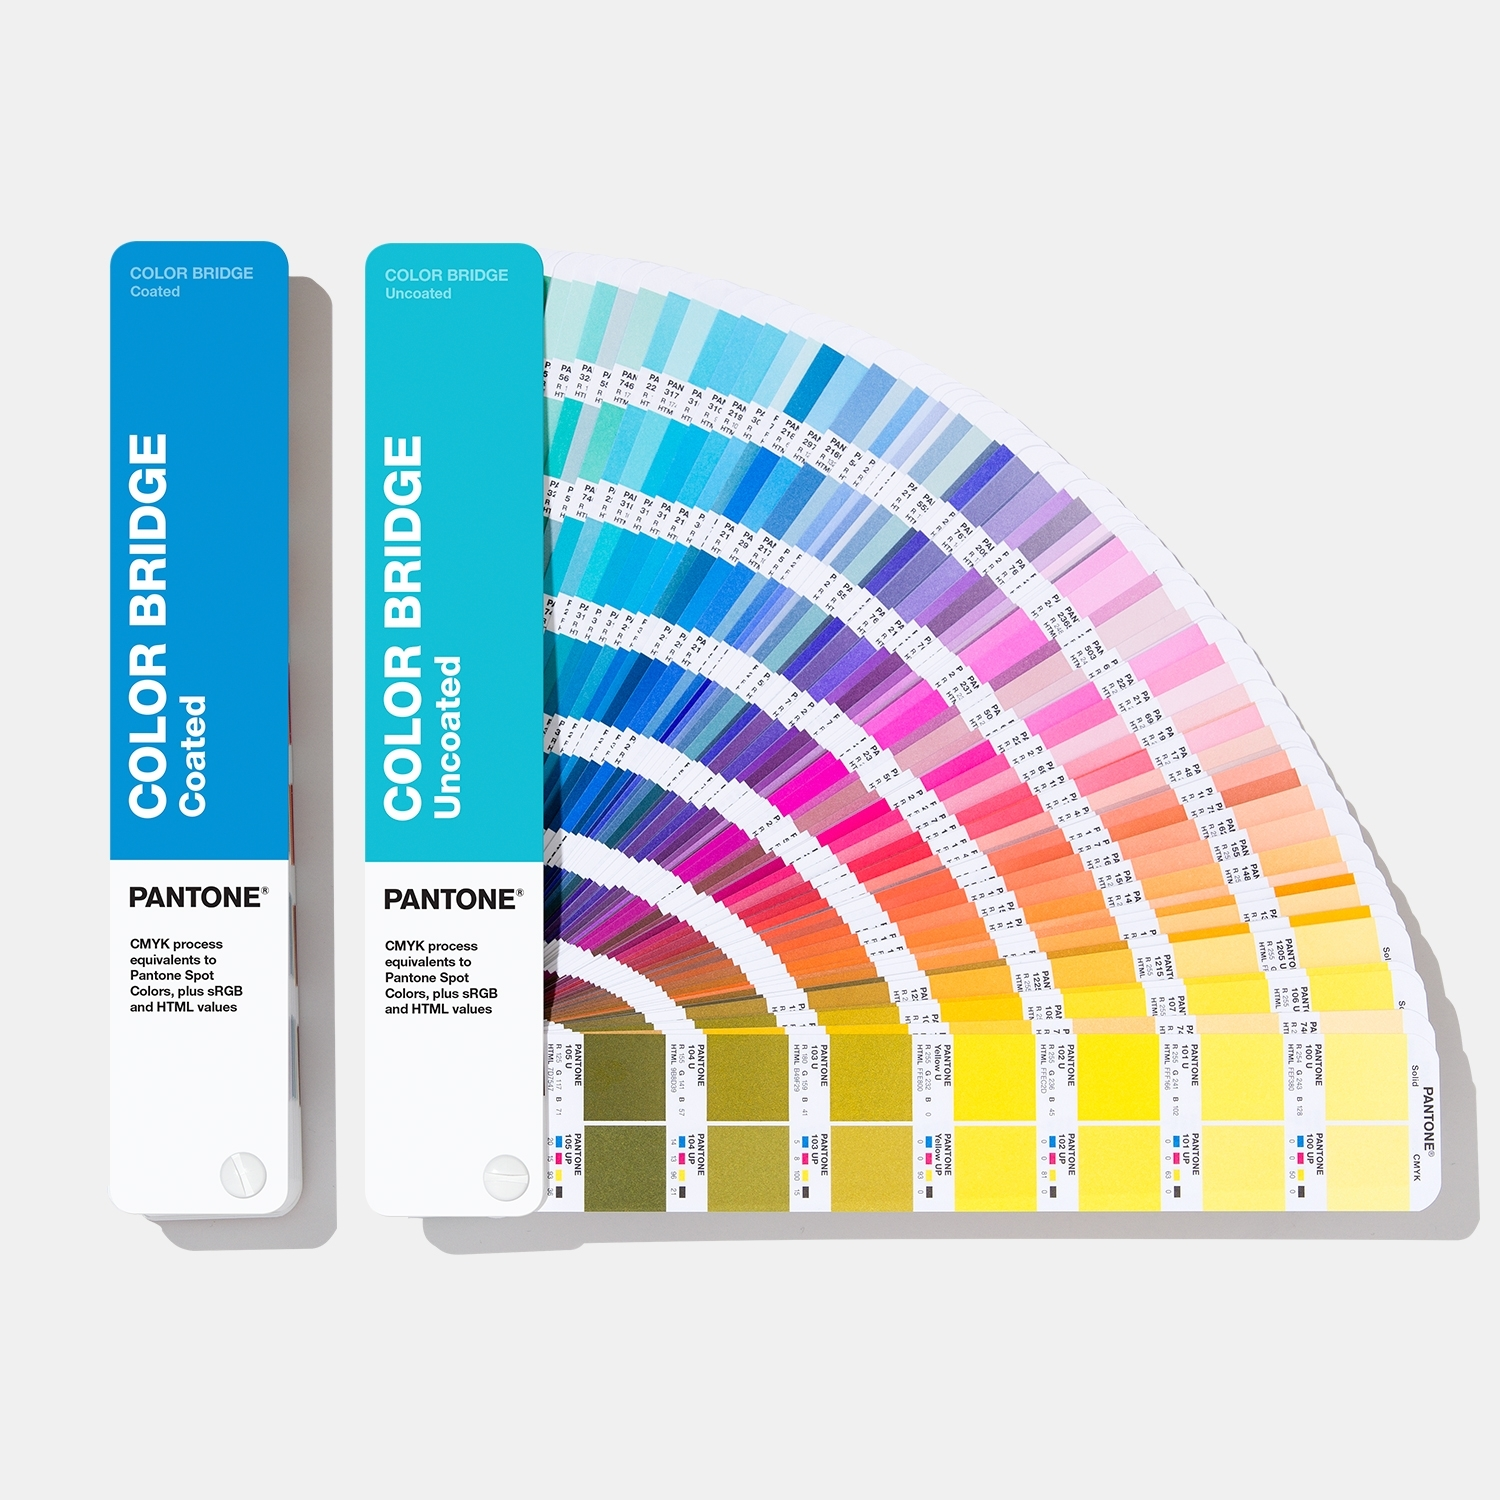 Color Bridge Guide | Coated Translate Pantone Colors into CMYK, HTML, RGB